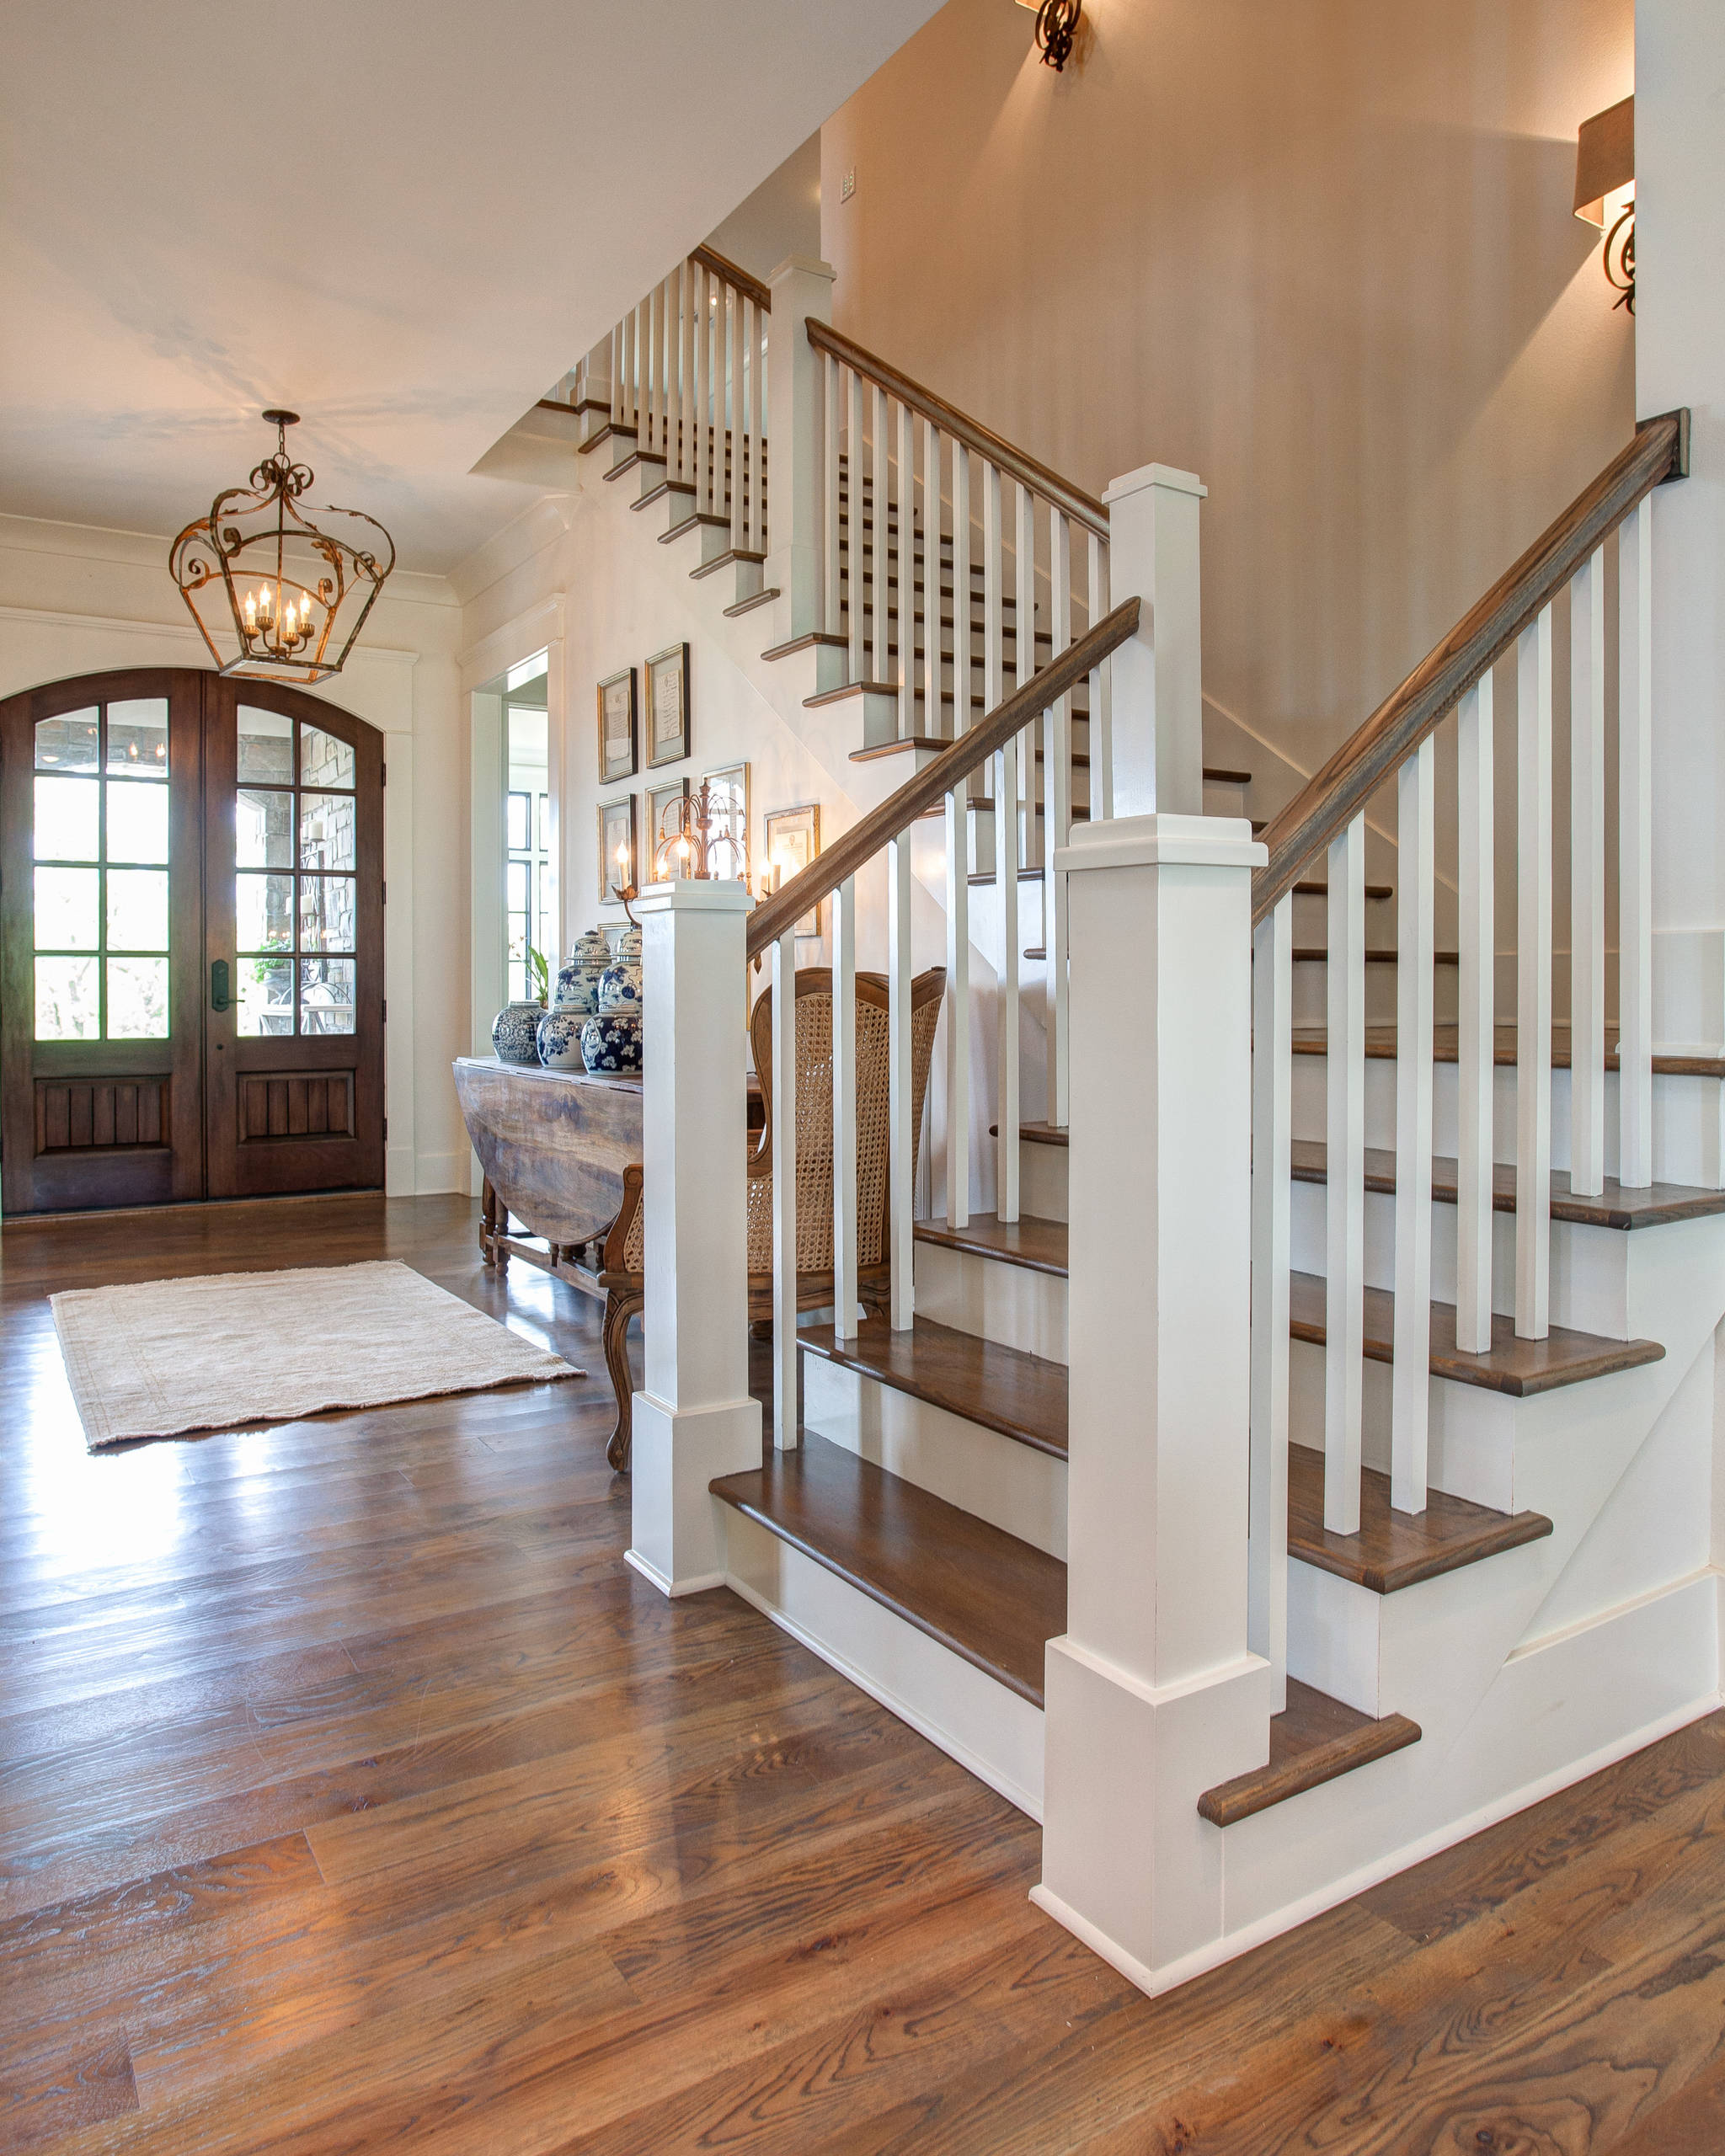 75 Beautiful Traditional Staircase Pictures Ideas March 2021 Houzz